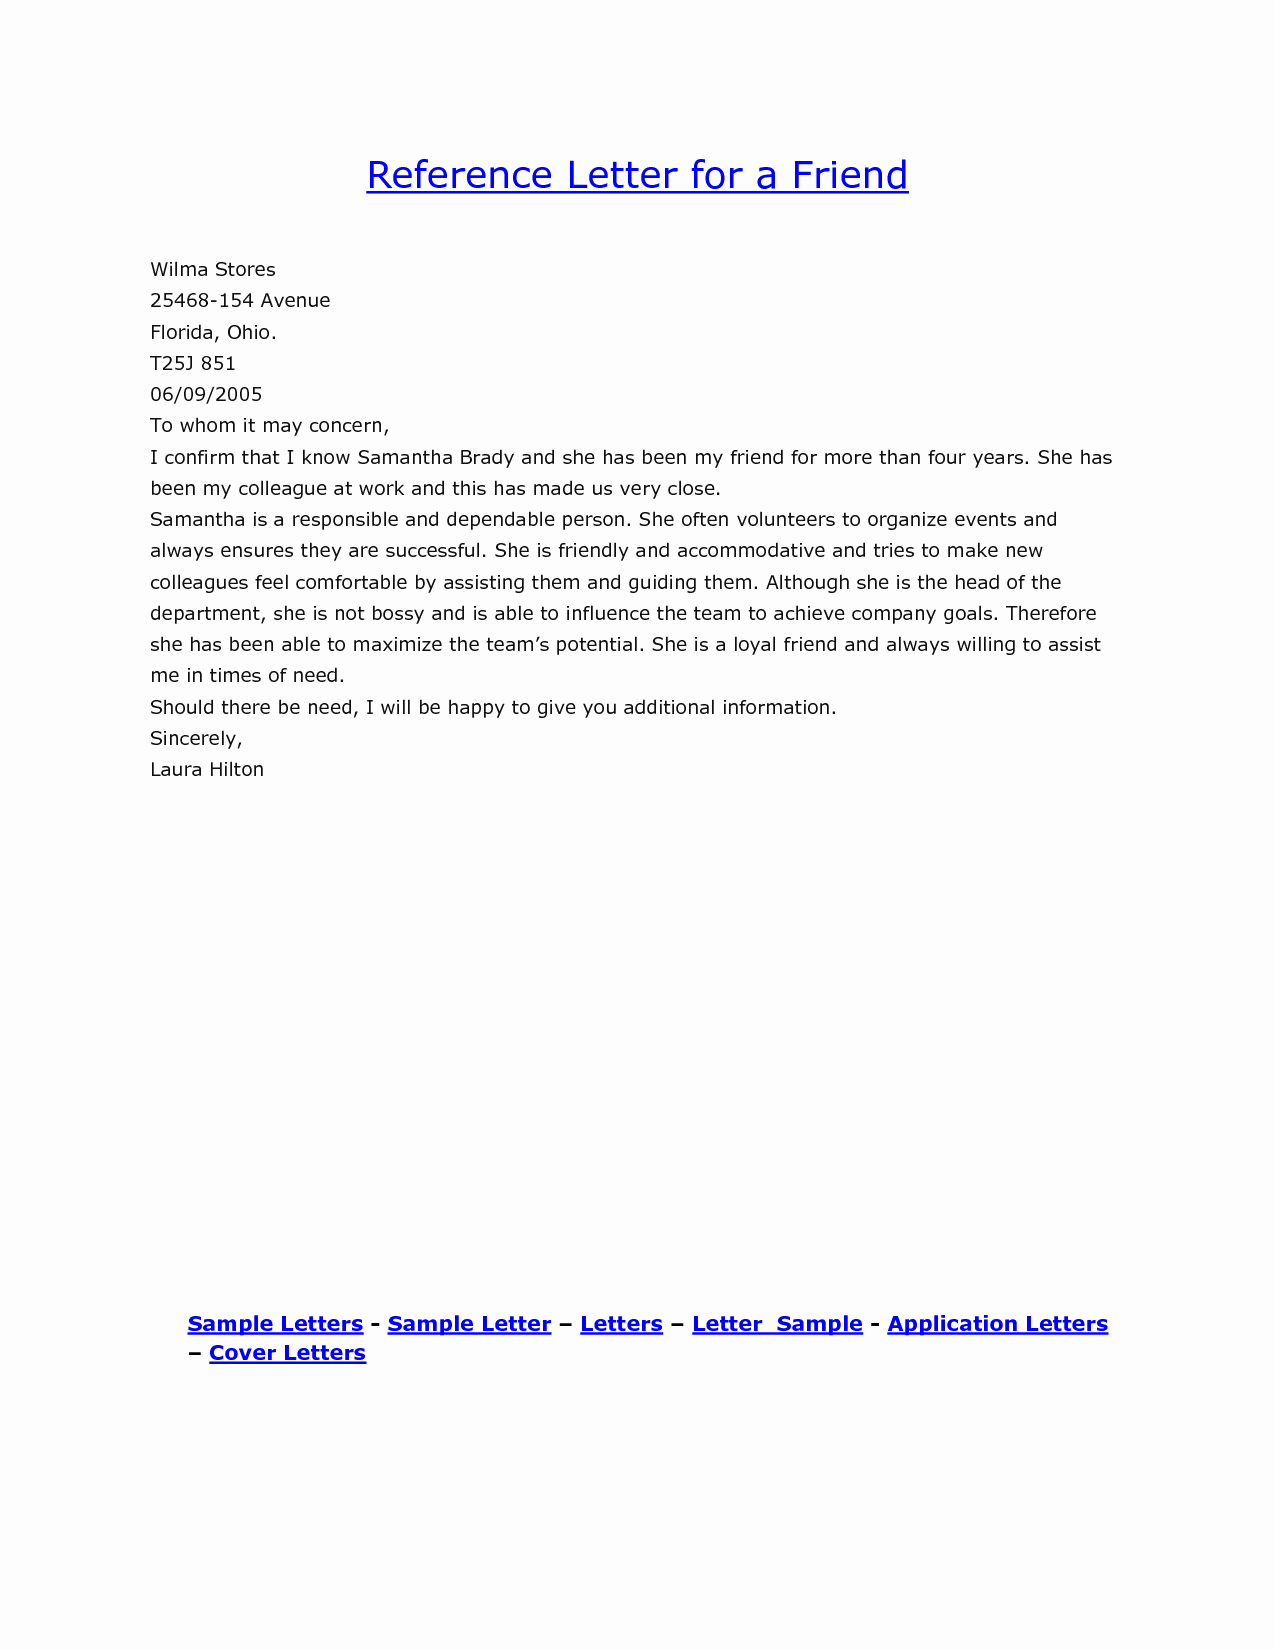 Letter Of Recommendation with Letterhead Awesome Sample Reference Letter for A Close Friend Cover Letter